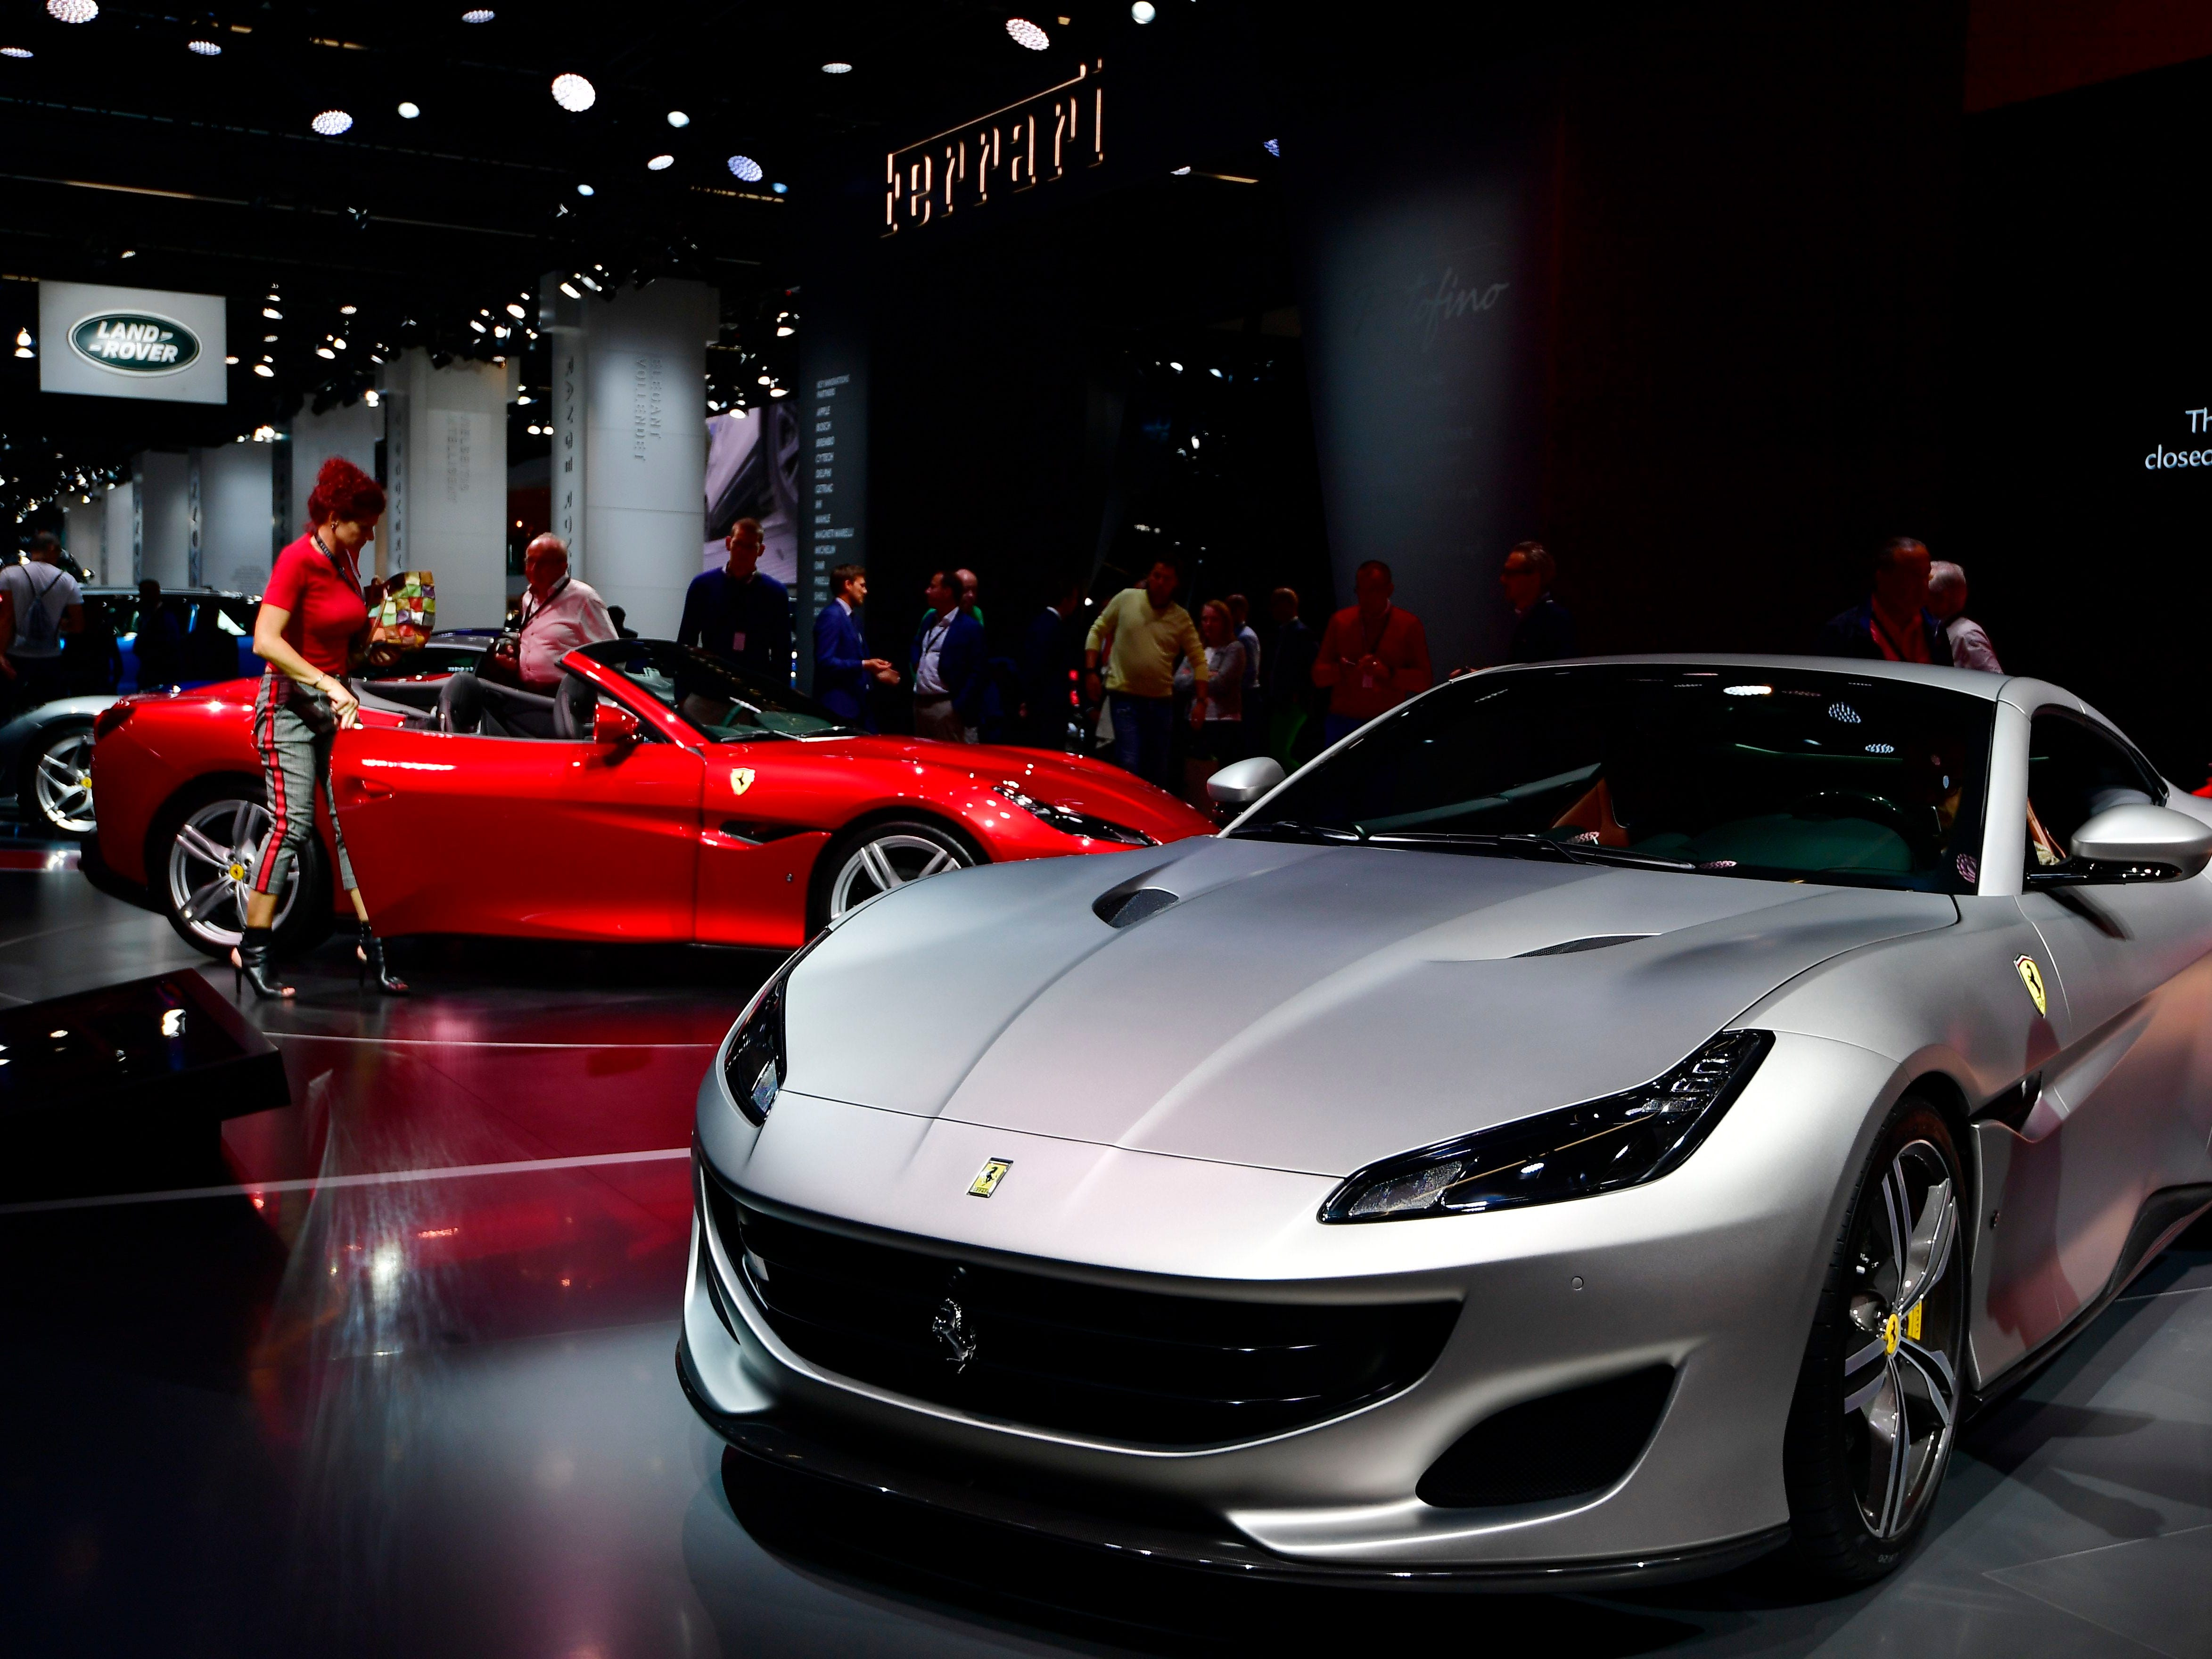 Specialty ultra-luxury car brand Ferrari ranked 80th at $6 billion, up 18 percent.